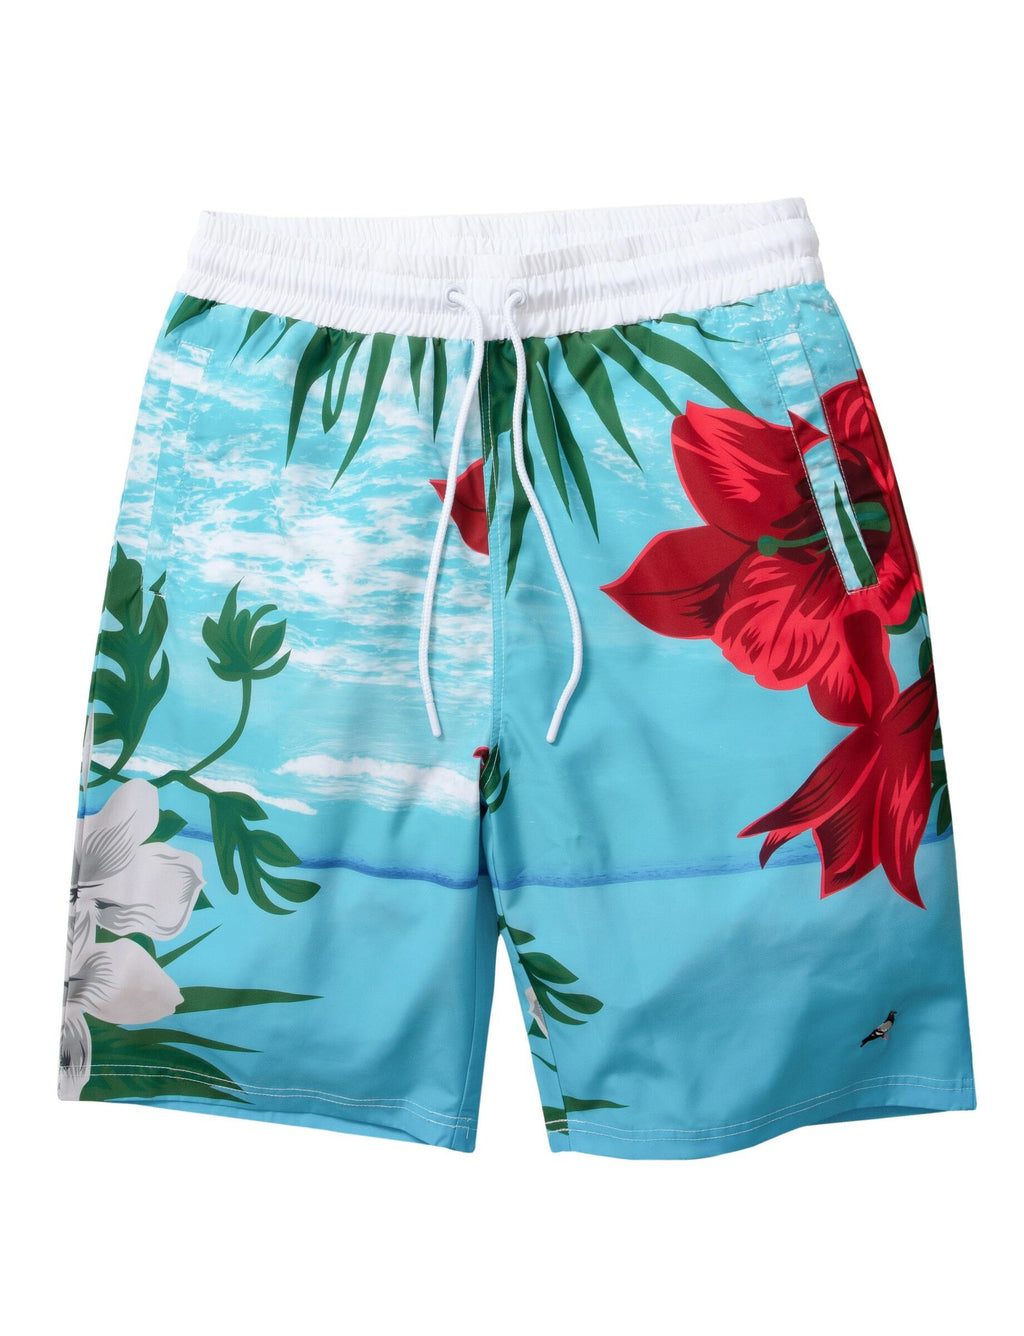 Printed Nylon Short - Shorts | Staple Pigeon